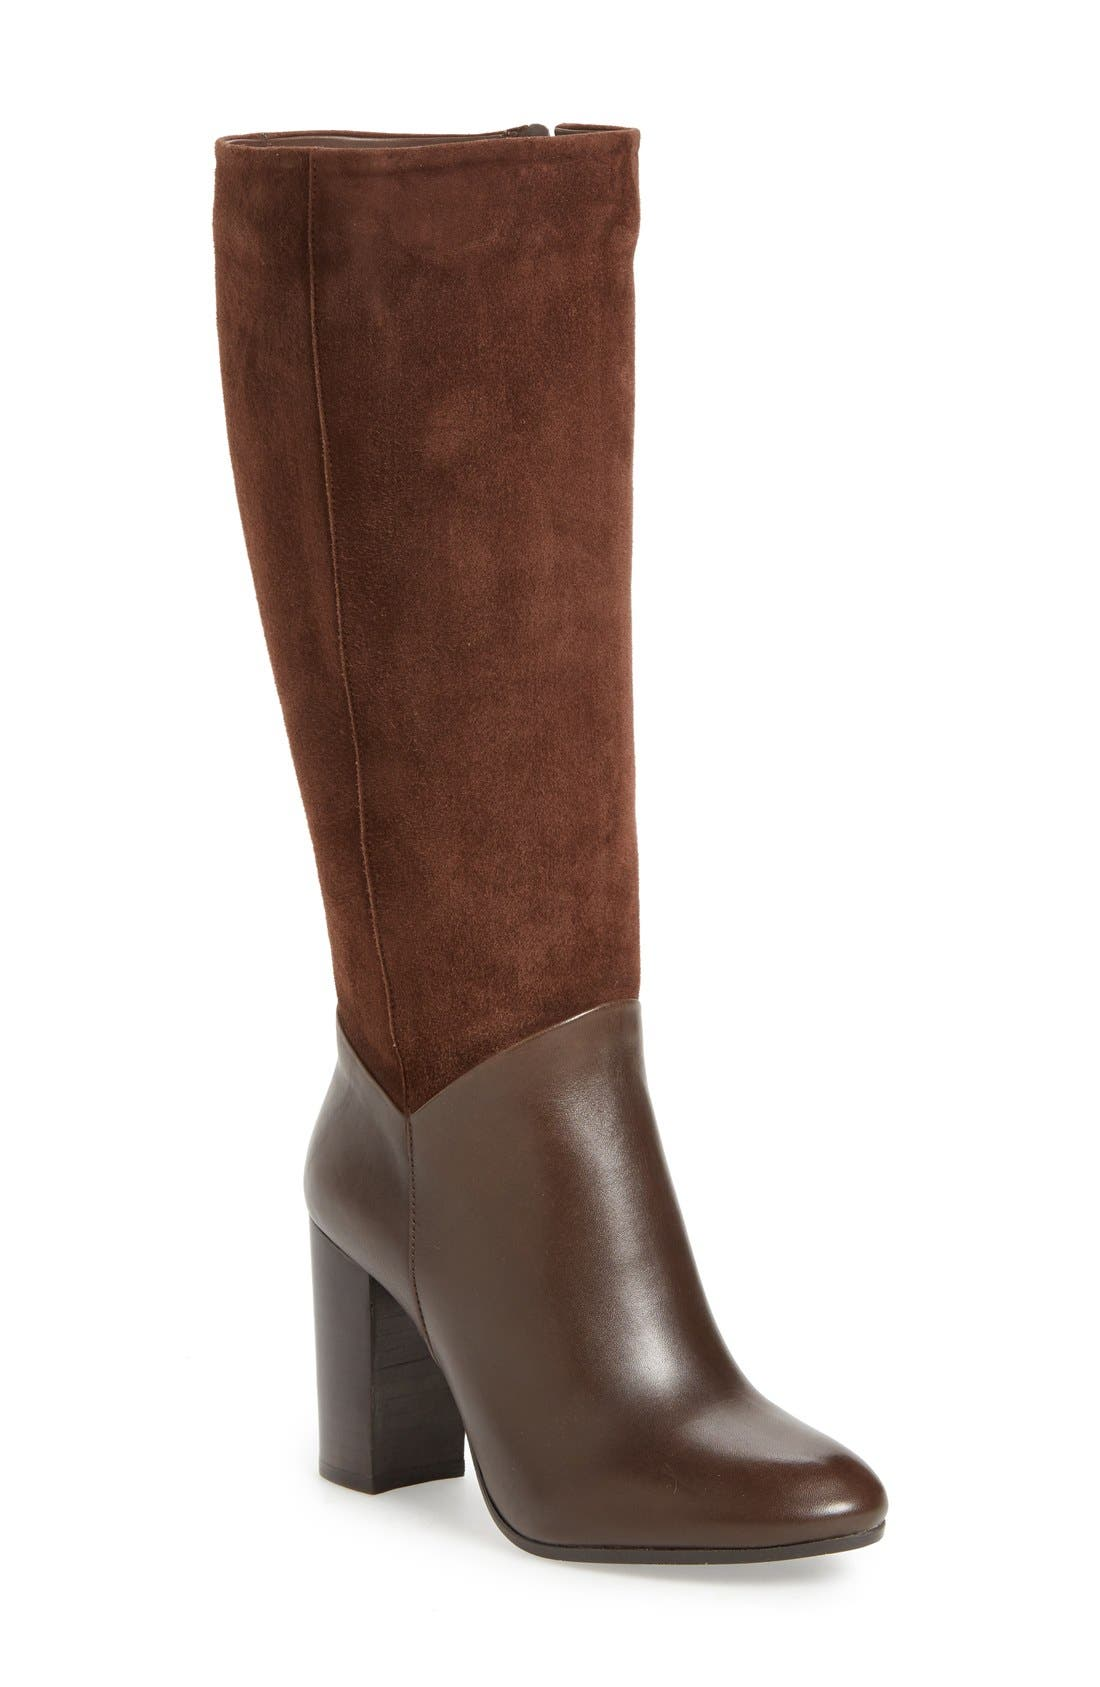 JOHNSTON & MURPHY 'Yvonne' Tall Water Resistant Boot